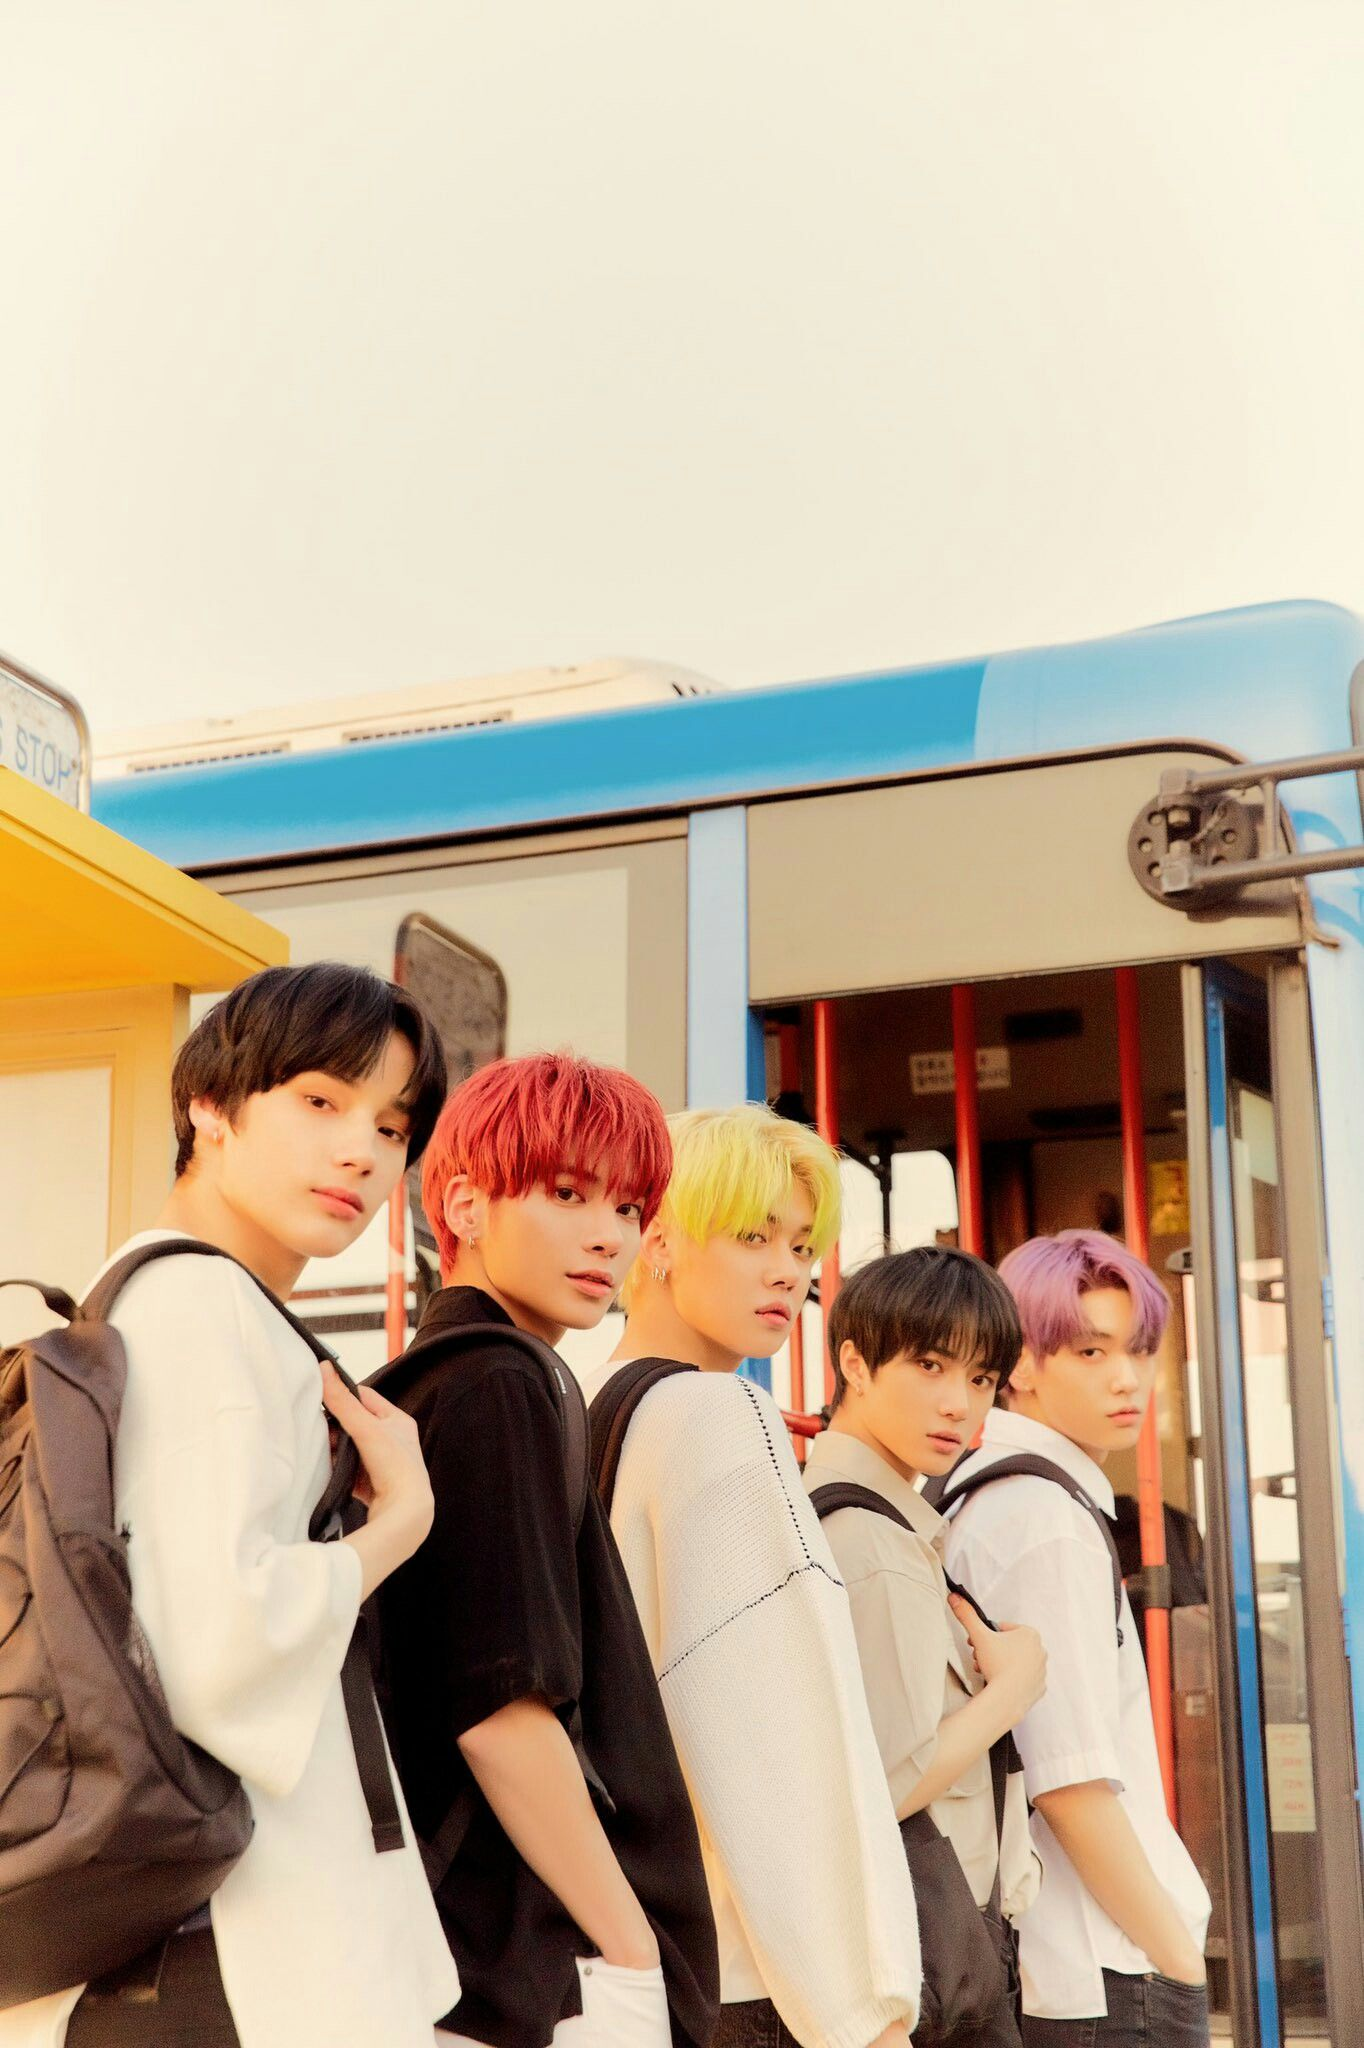 Txt The Dream Chapter Eternity Port Ver Photo Concept In 2020 Txt Photo S Photo